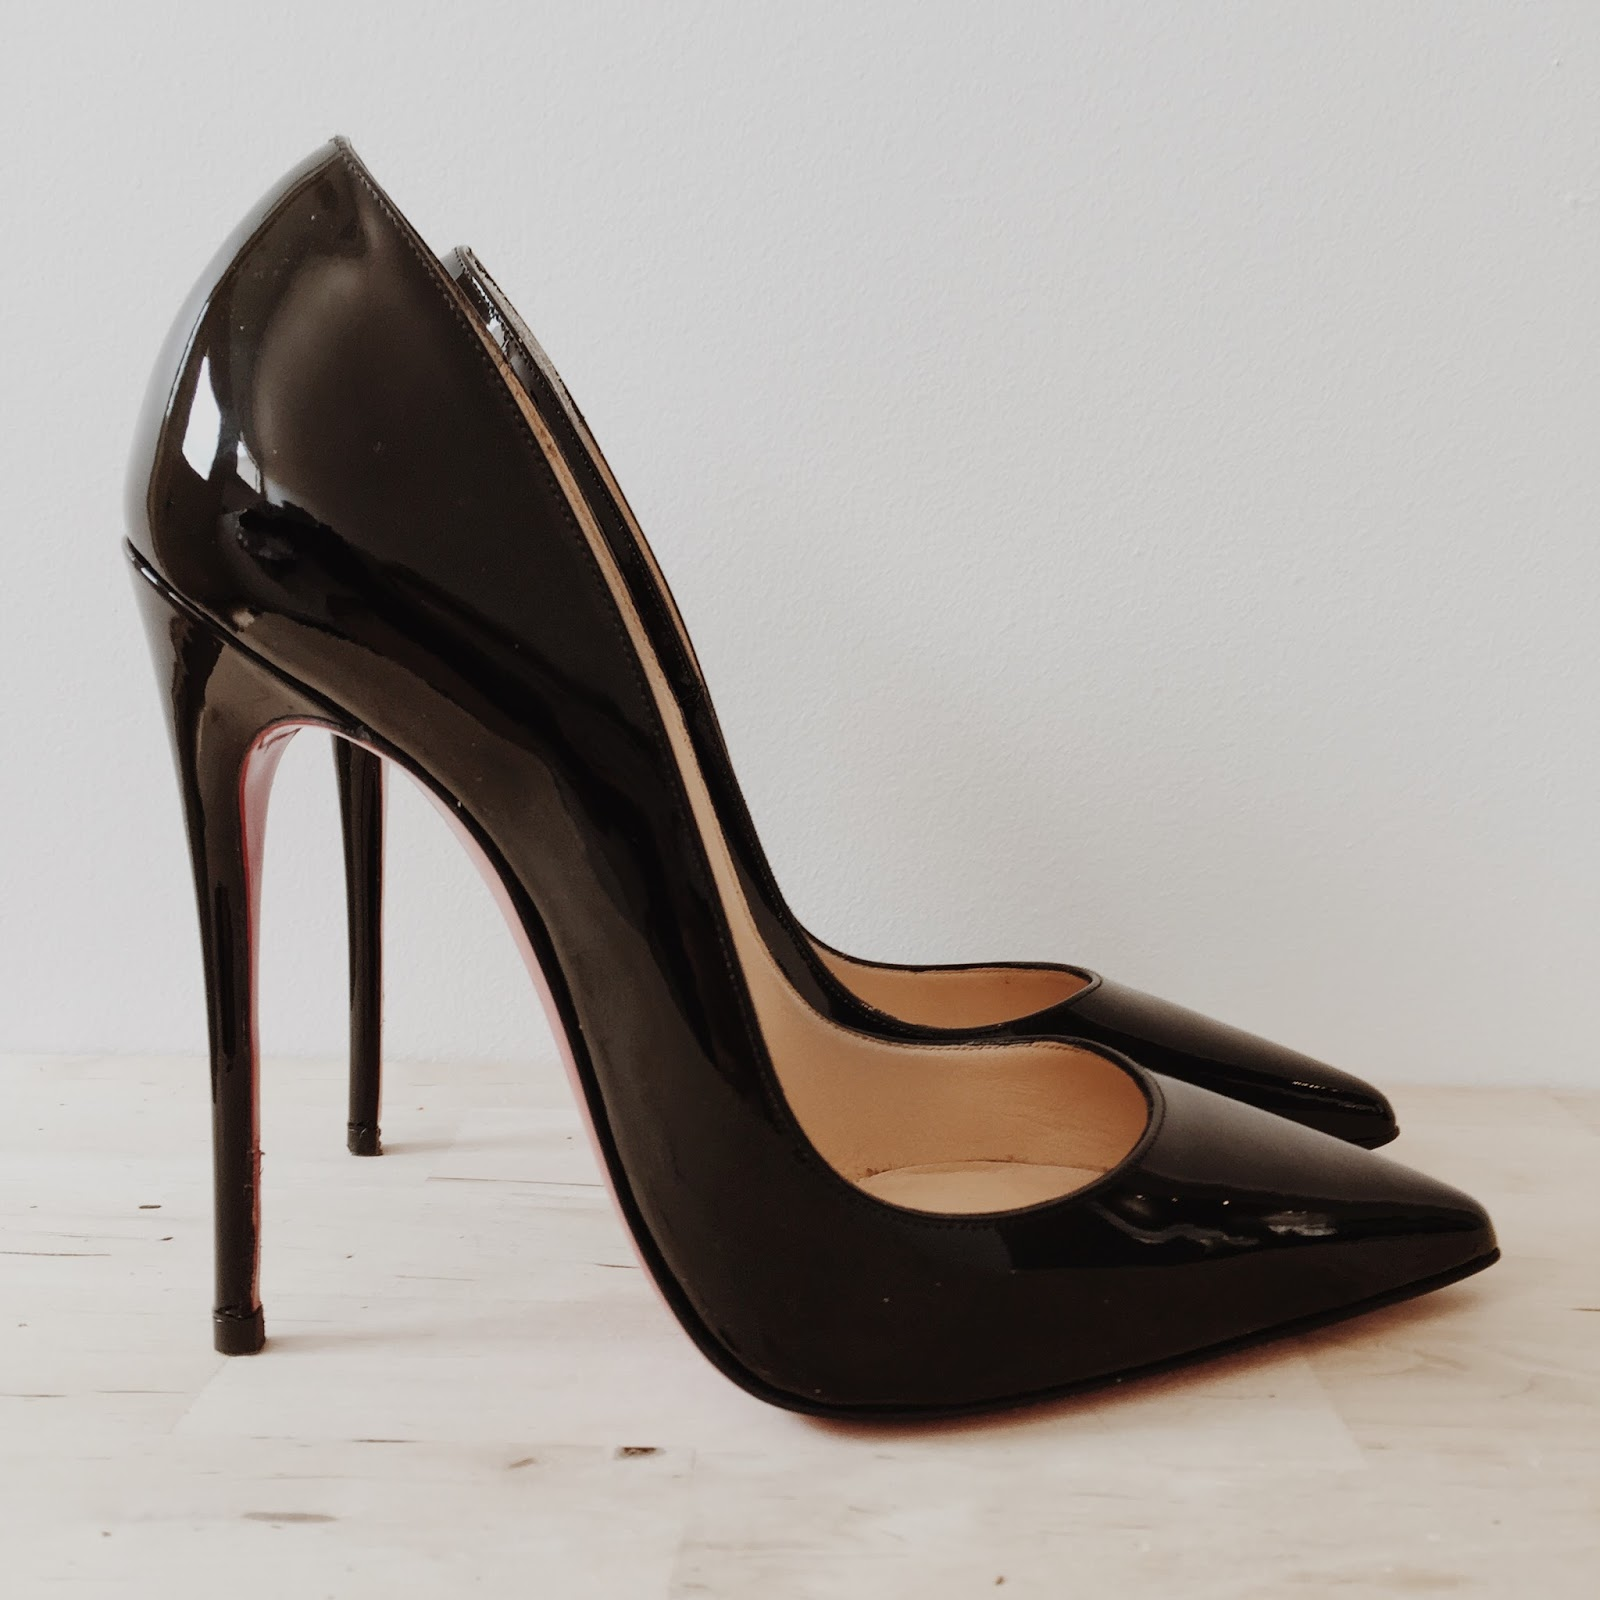 new style a5985 dacda J.N.: Review - Christian Louboutin So Kate 120mm Black Patent